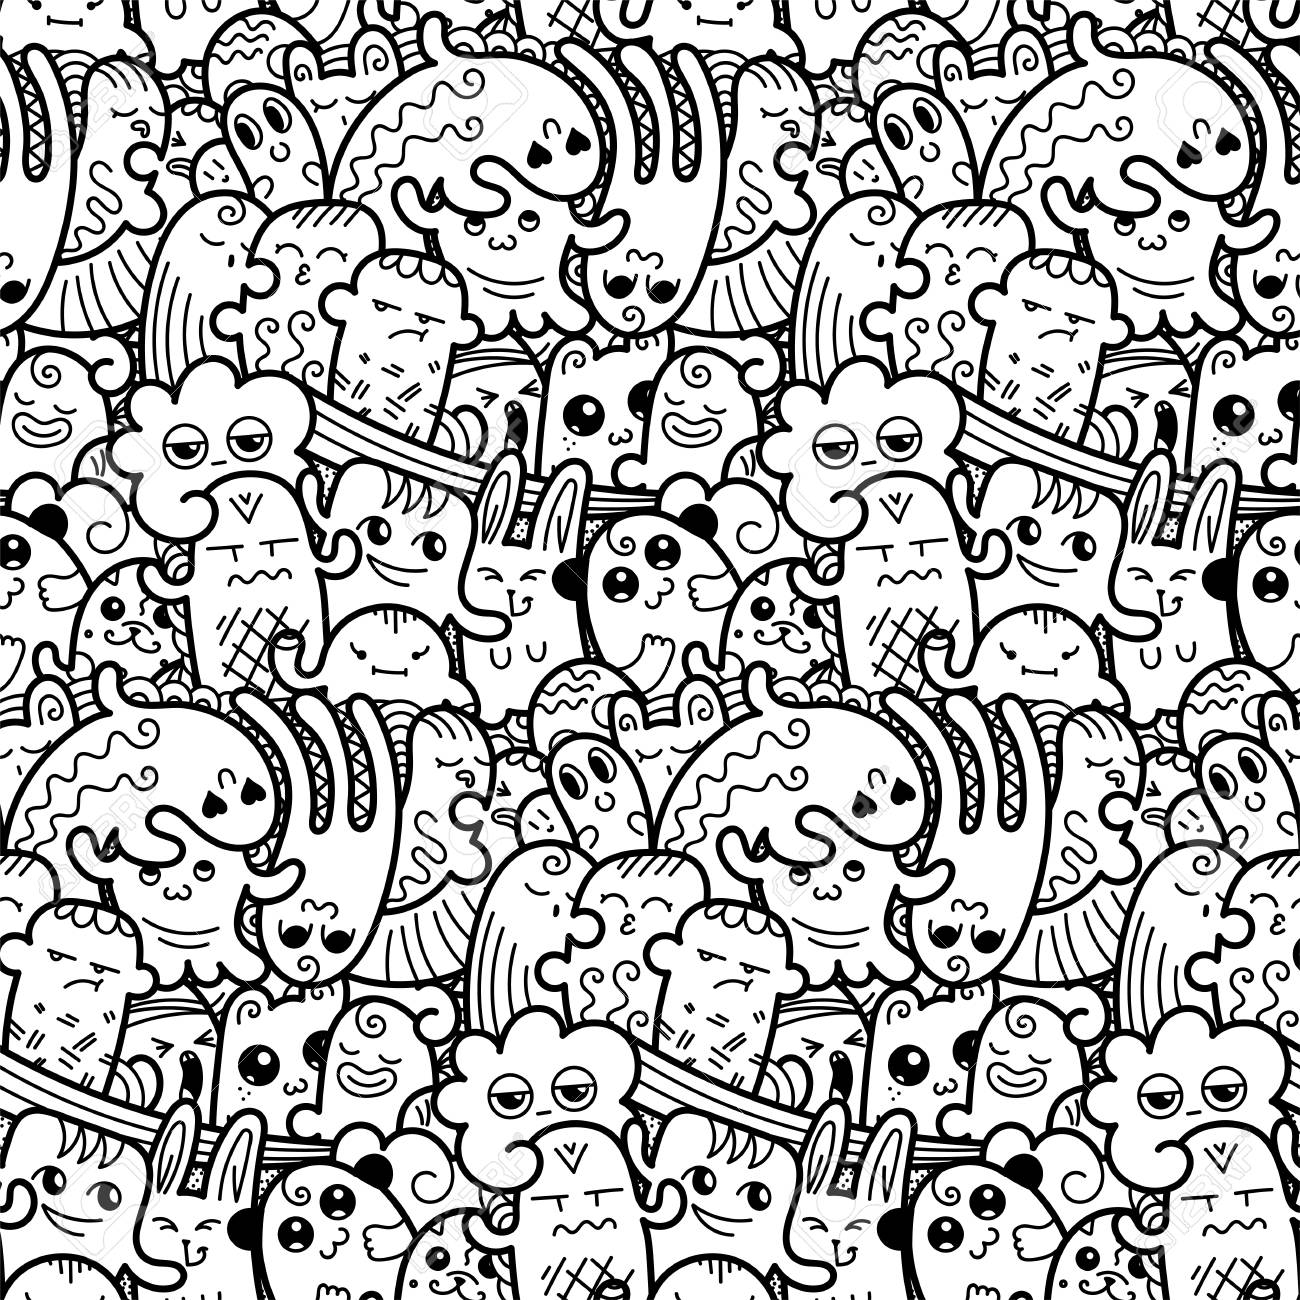 Funny doodle monsters seamless pattern for prints, designs and coloring books. Vector illustration - 111003131